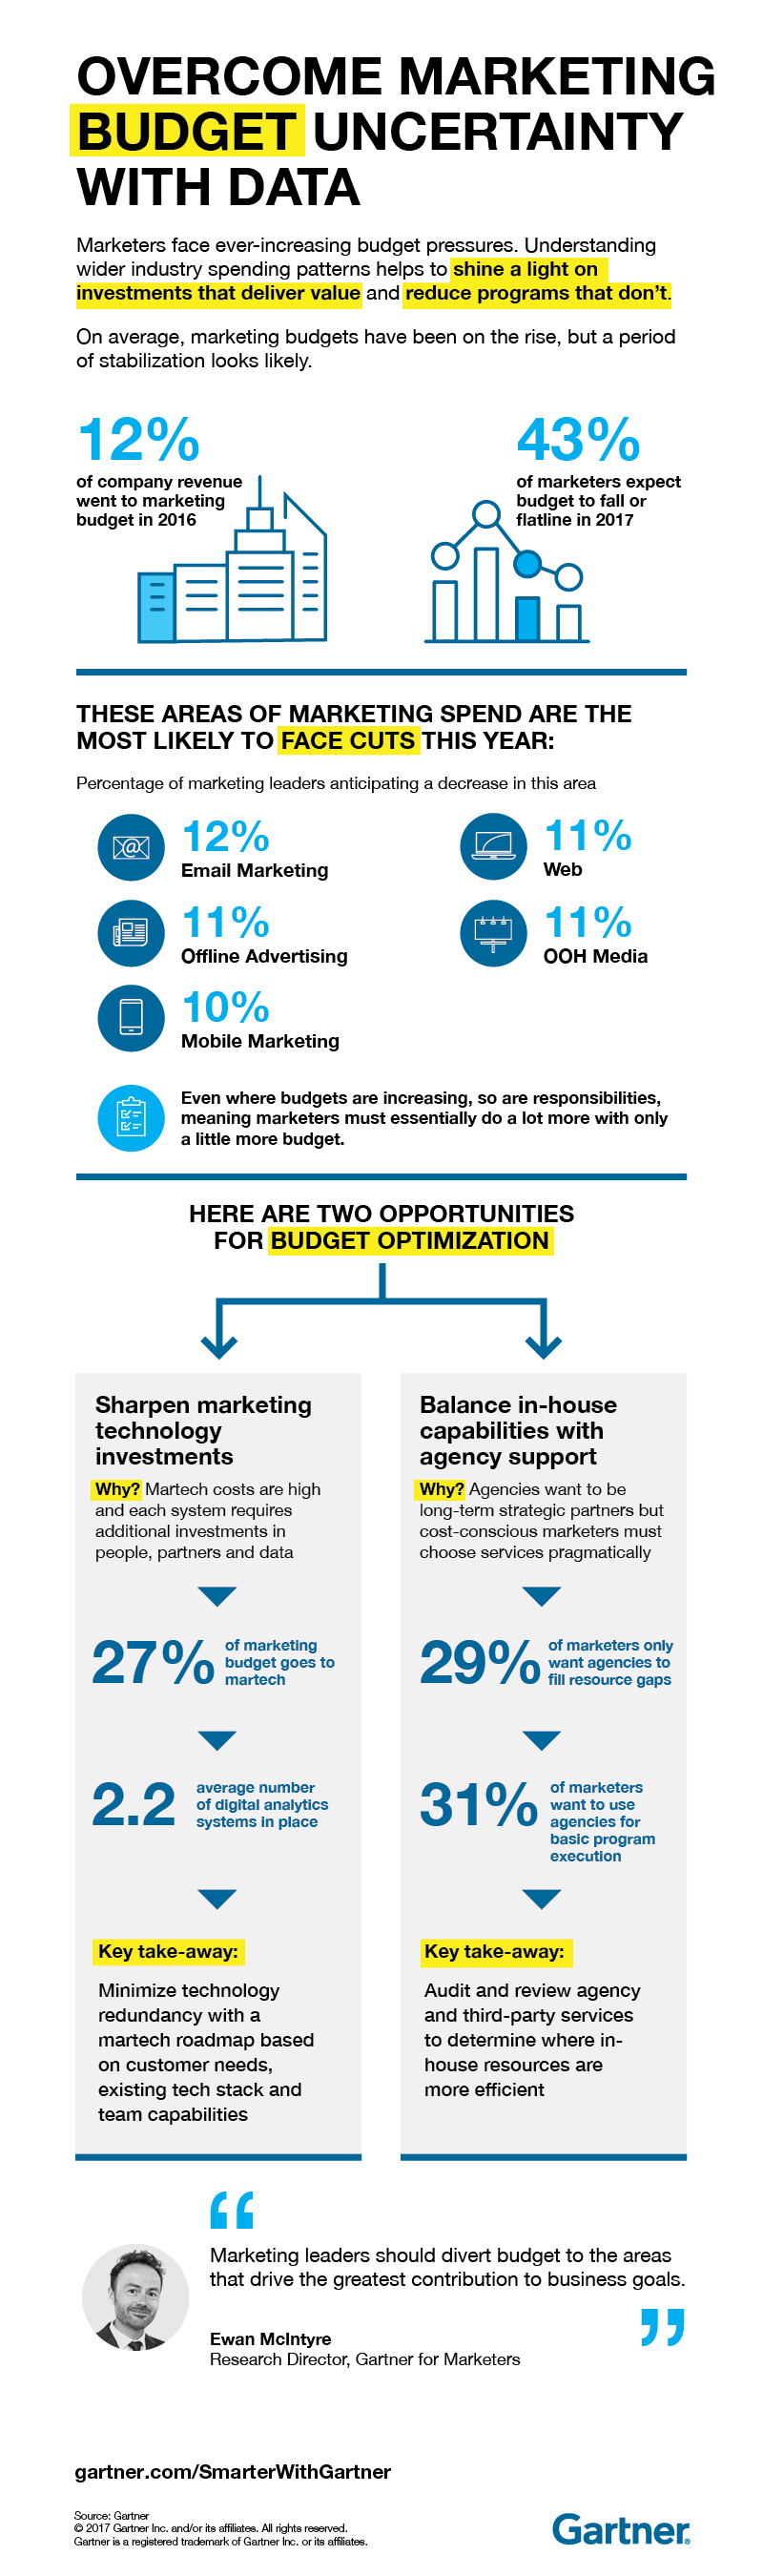 Overcome Marketing Budget Uncertainty With Data